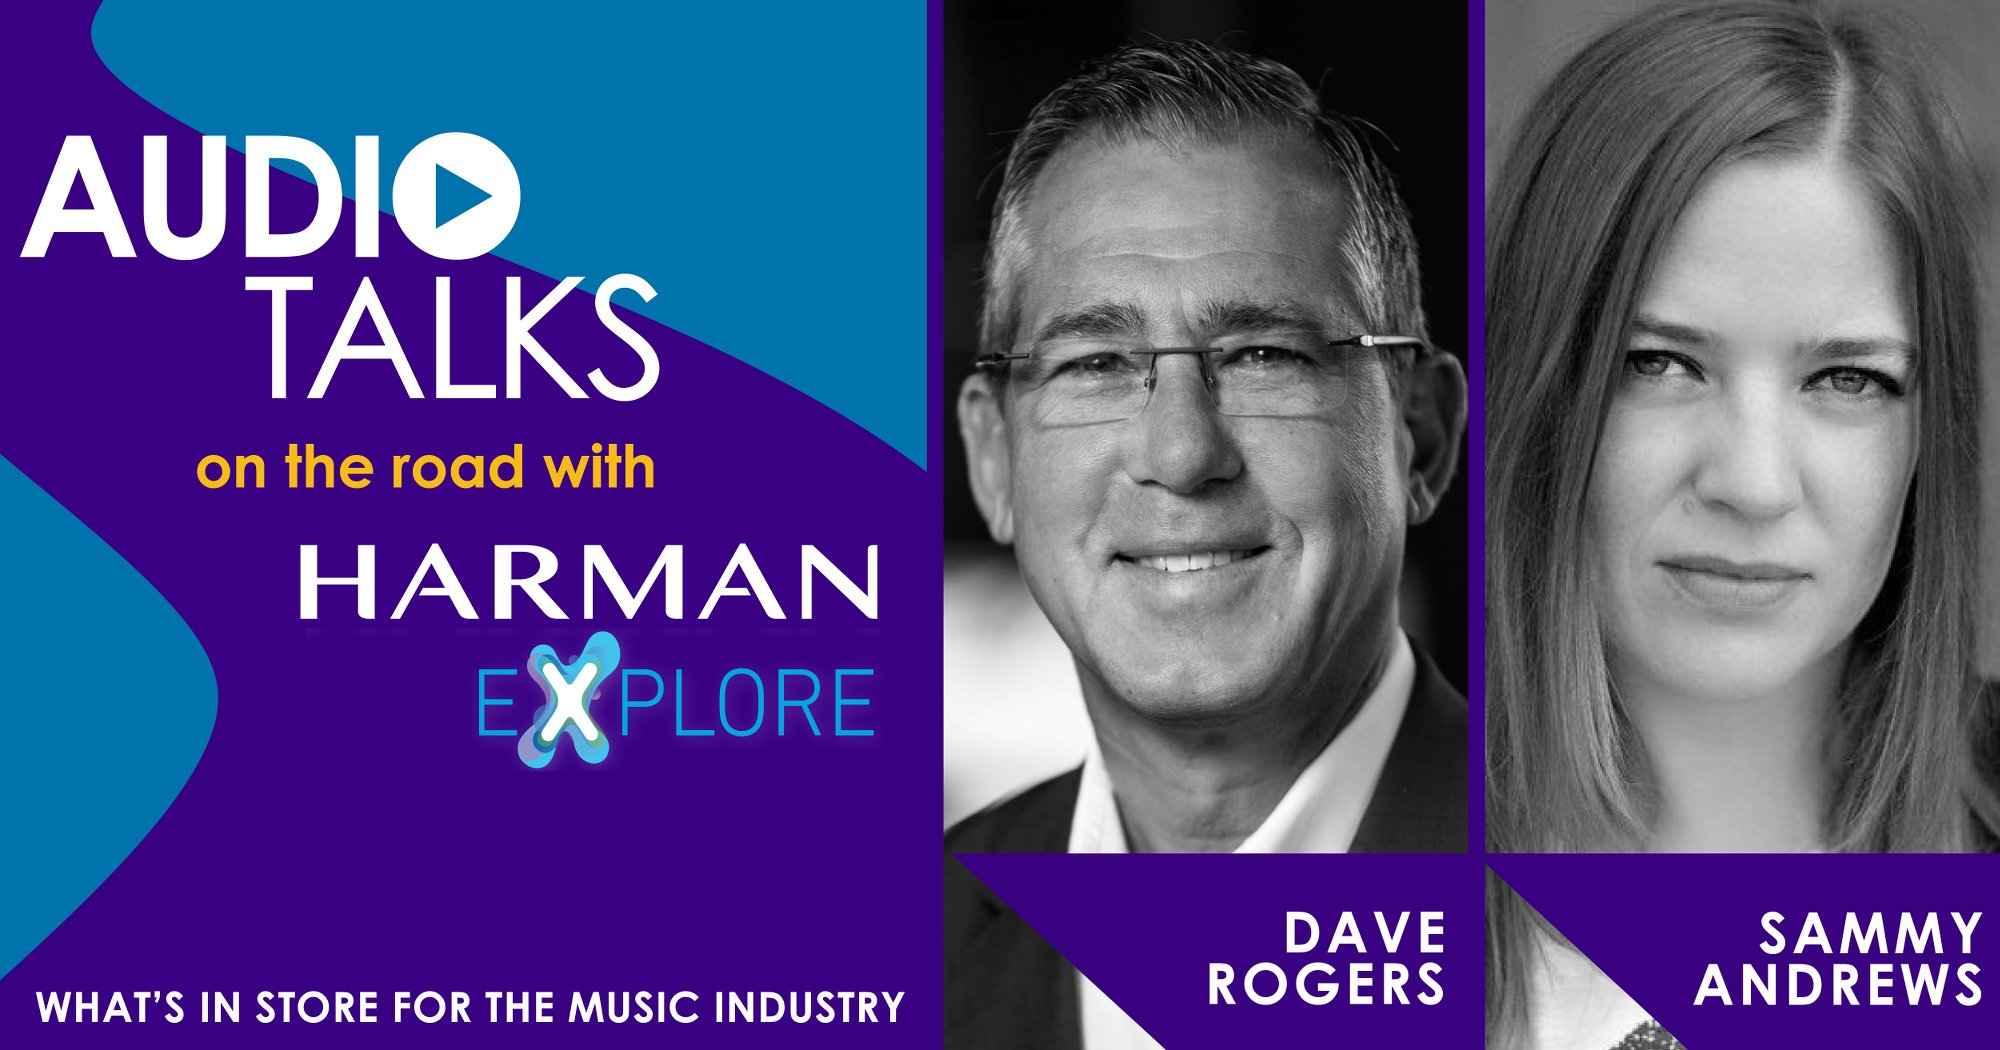 HARMAN ExPLORE: What's in store for the Music Industry